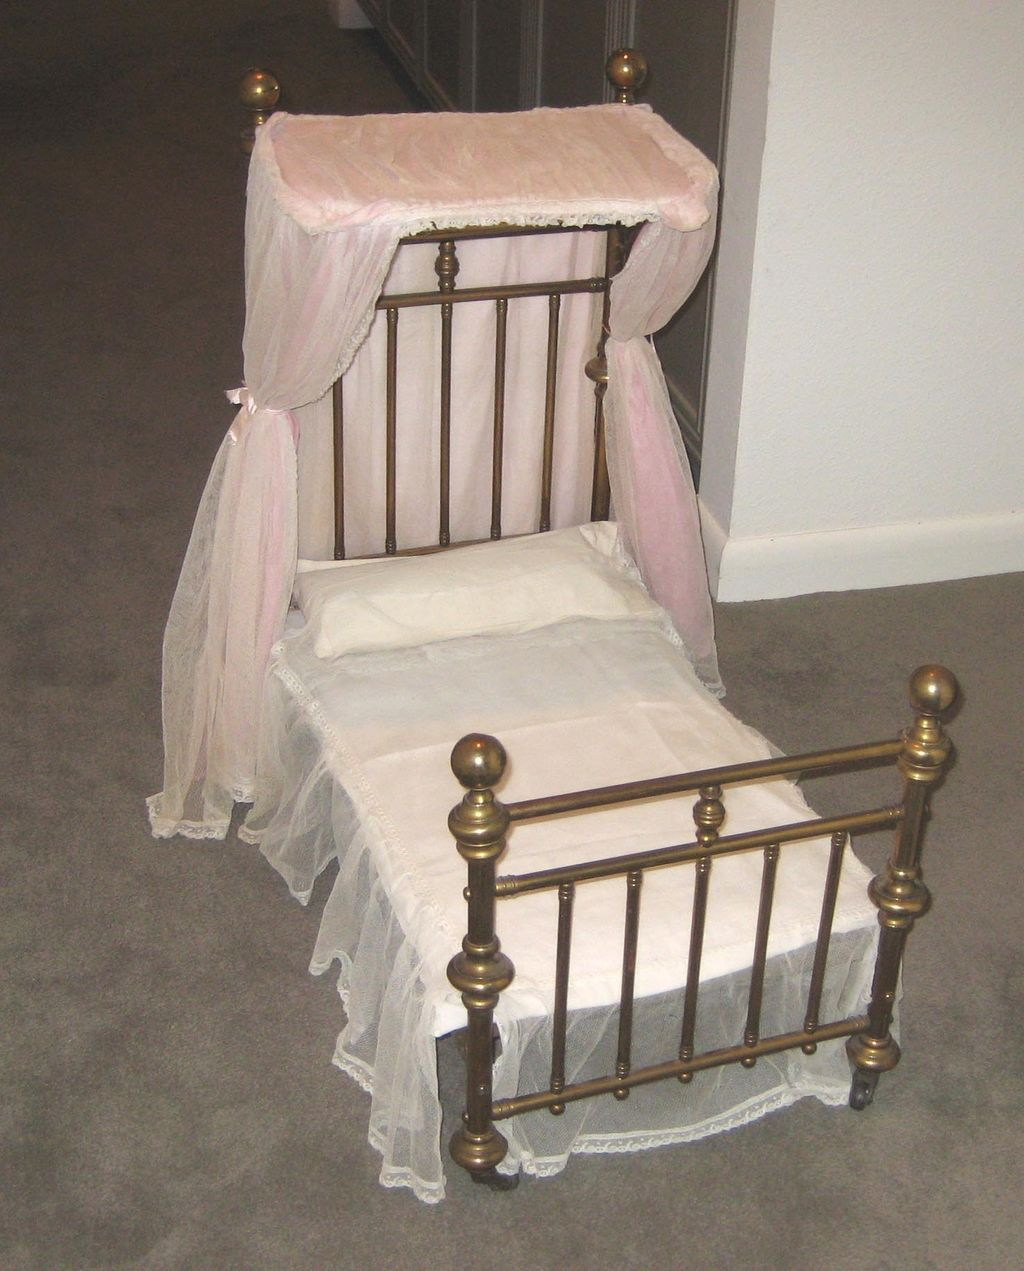 Antique doll half tester canopy brass bed & Antique doll half tester canopy brass bed | Brass bed Antique ...